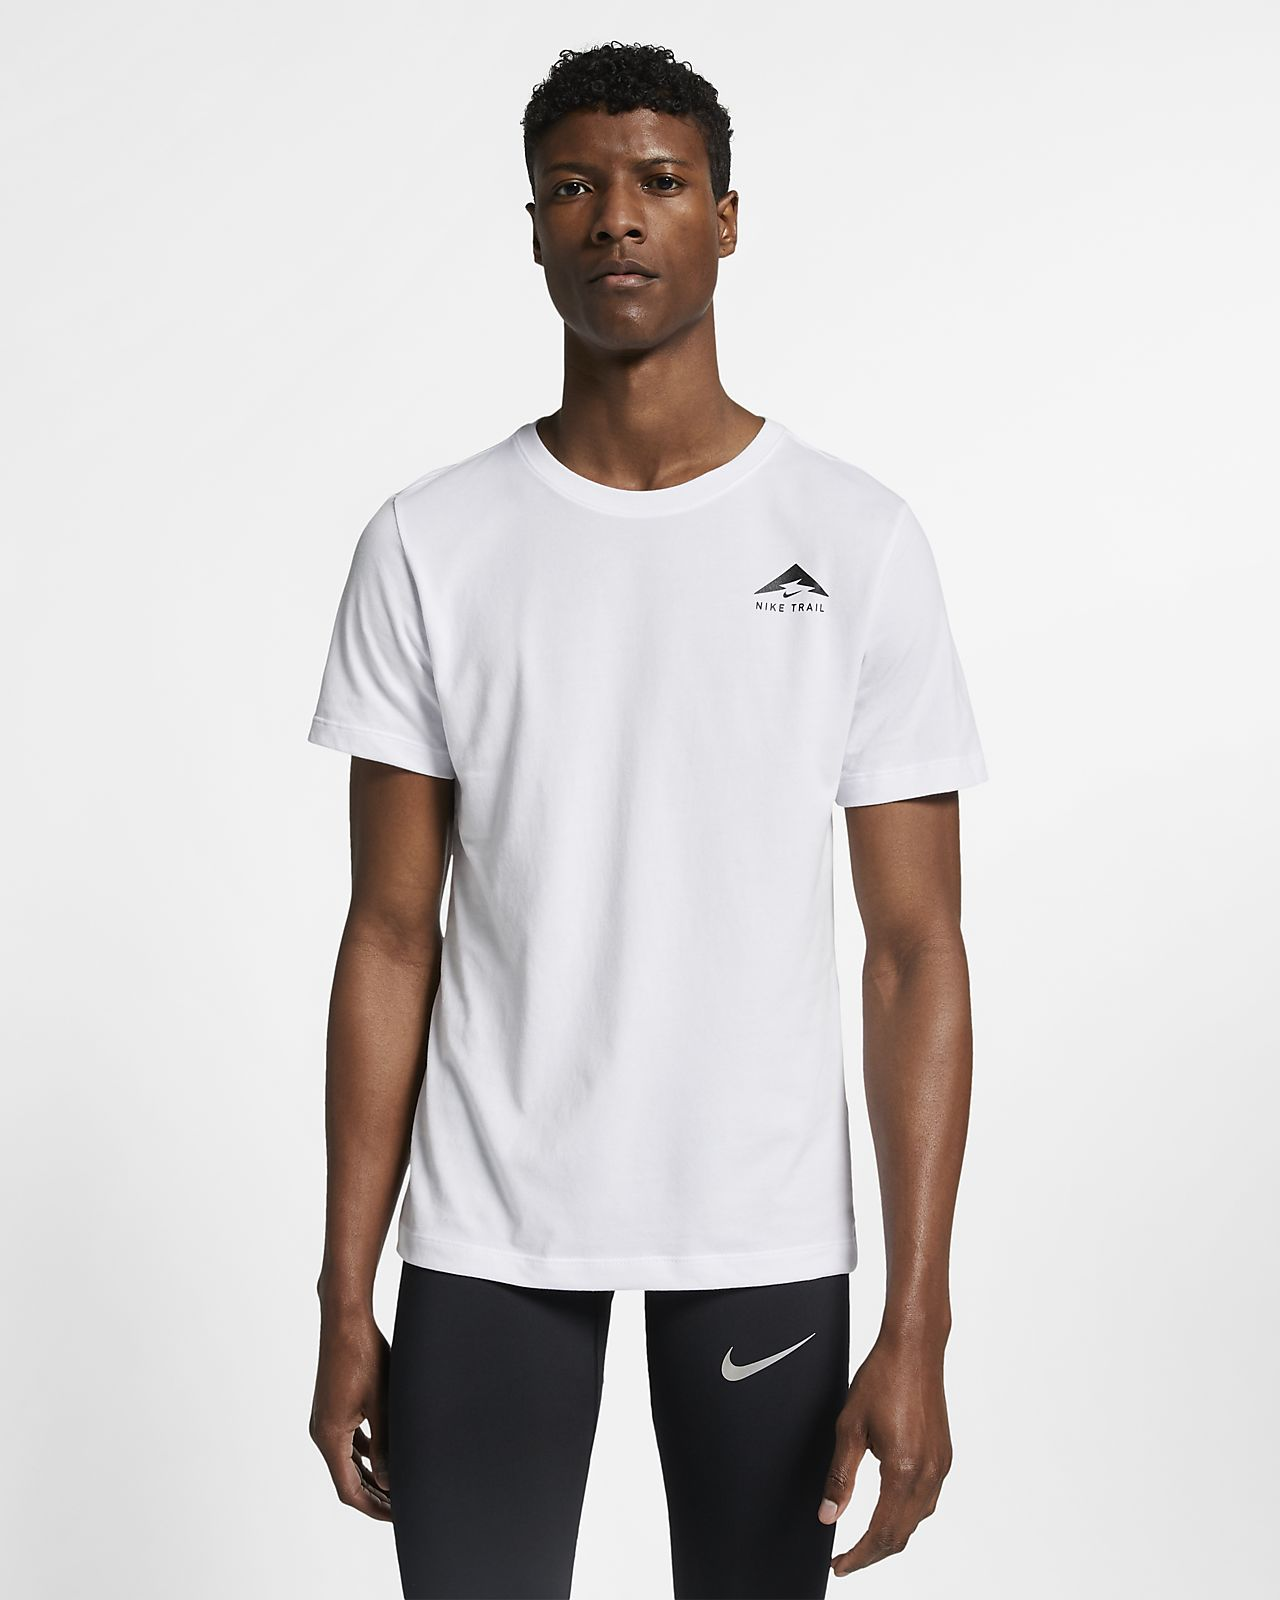 Playera de running para hombre Nike Trail Dri-FIT